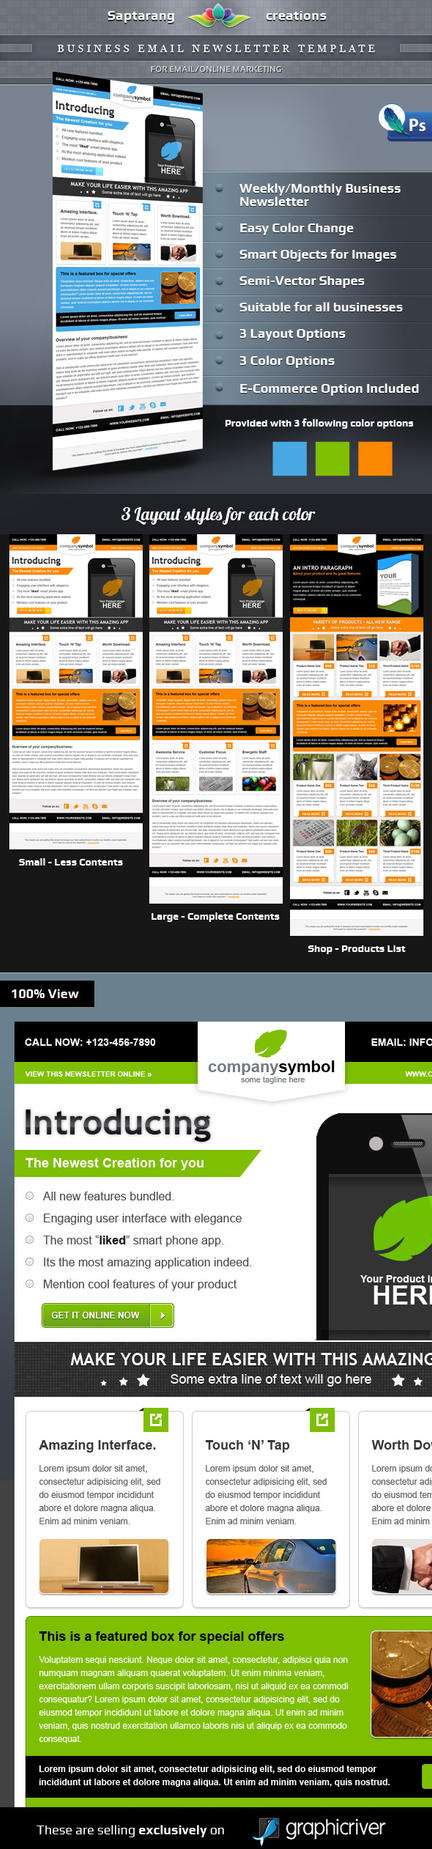 Business Email Newsletter Template by Saptarang